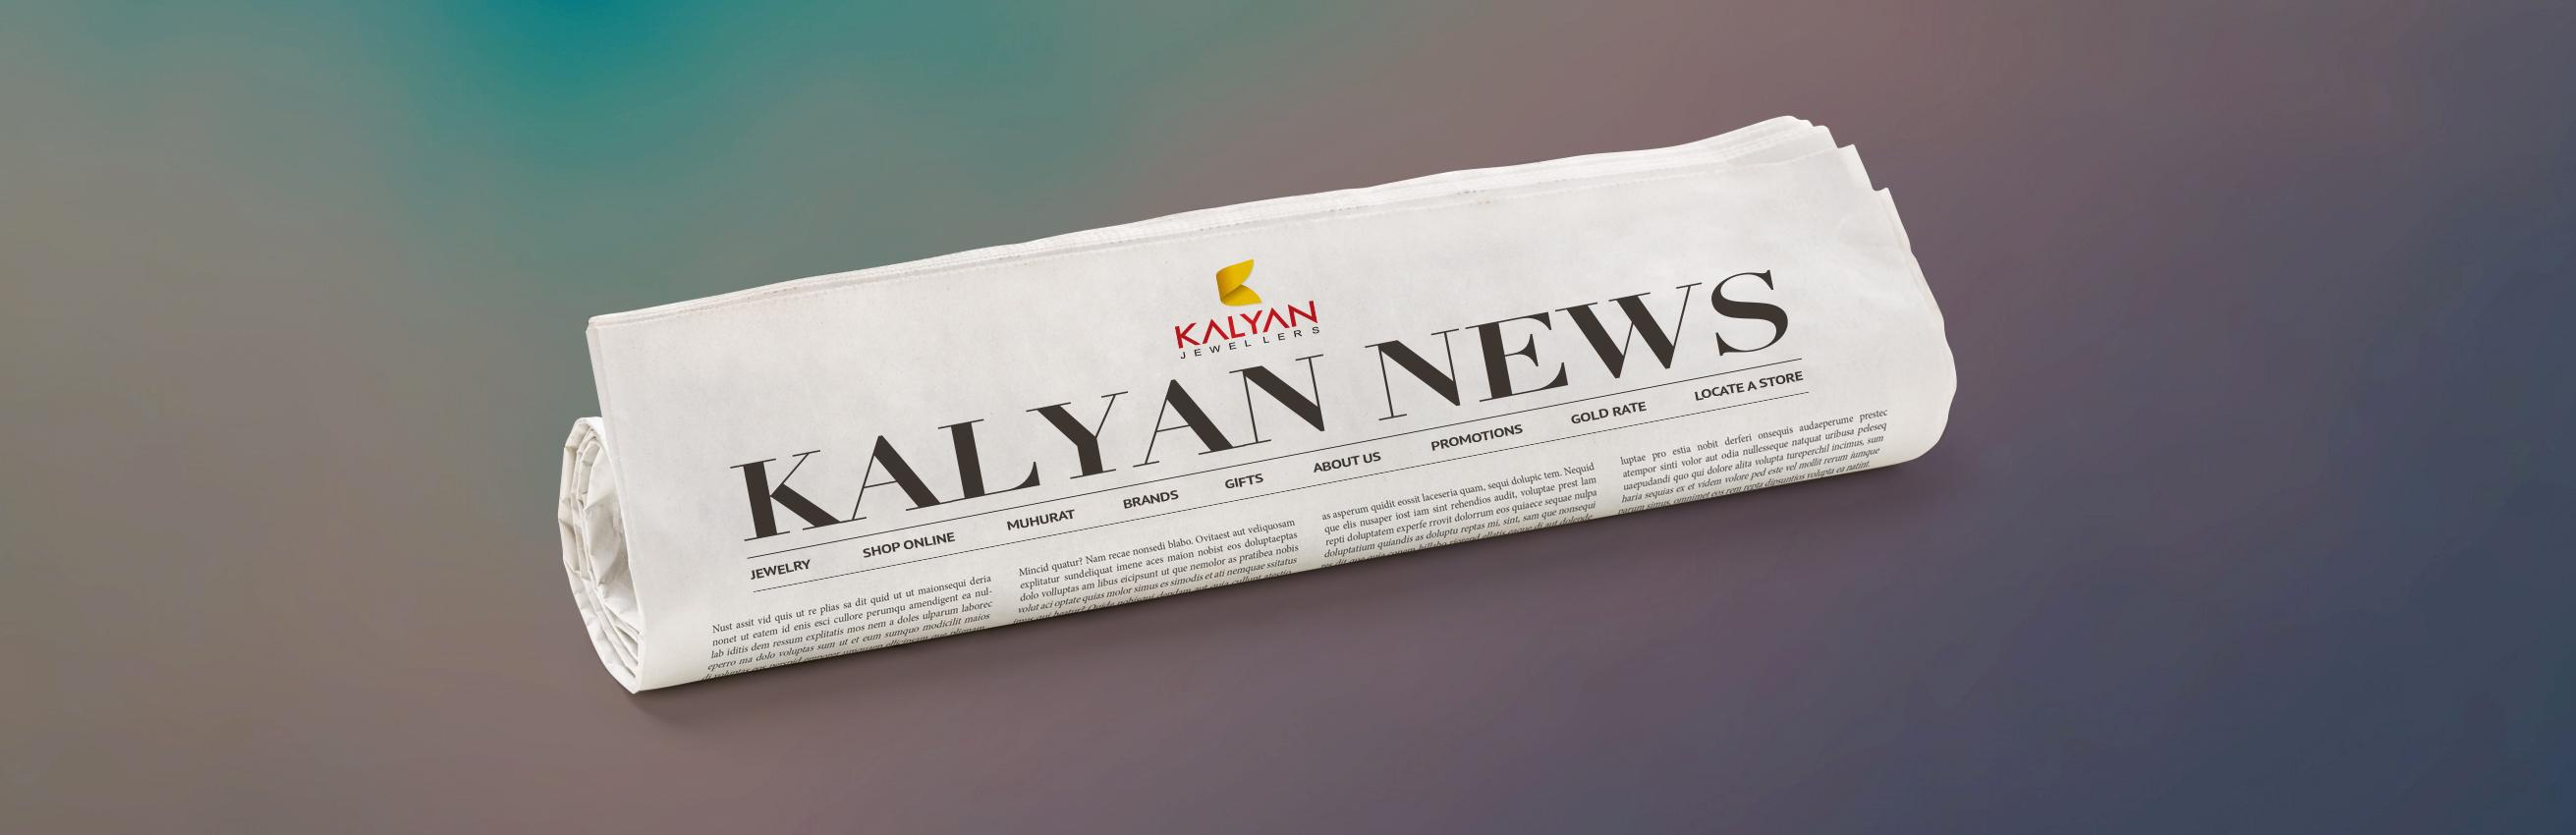 Jewelry kalyan jewellers Kalyan News